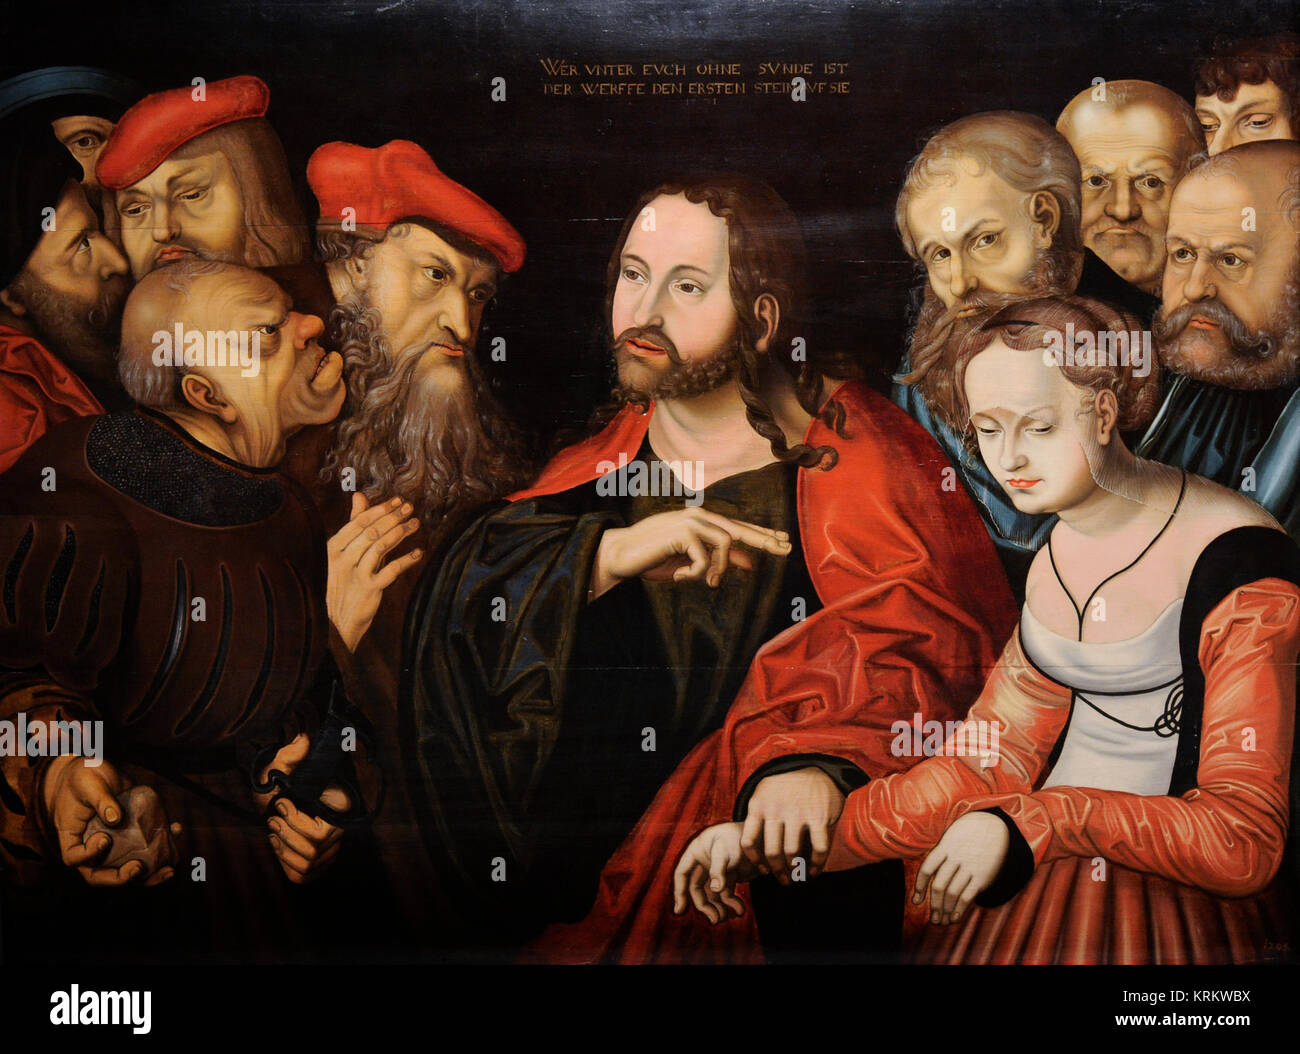 Follower of Lucas Cranach the Elder (16th century). Christ and the Woman Taken in Adultery, 1531. National Gallery. - Stock Image